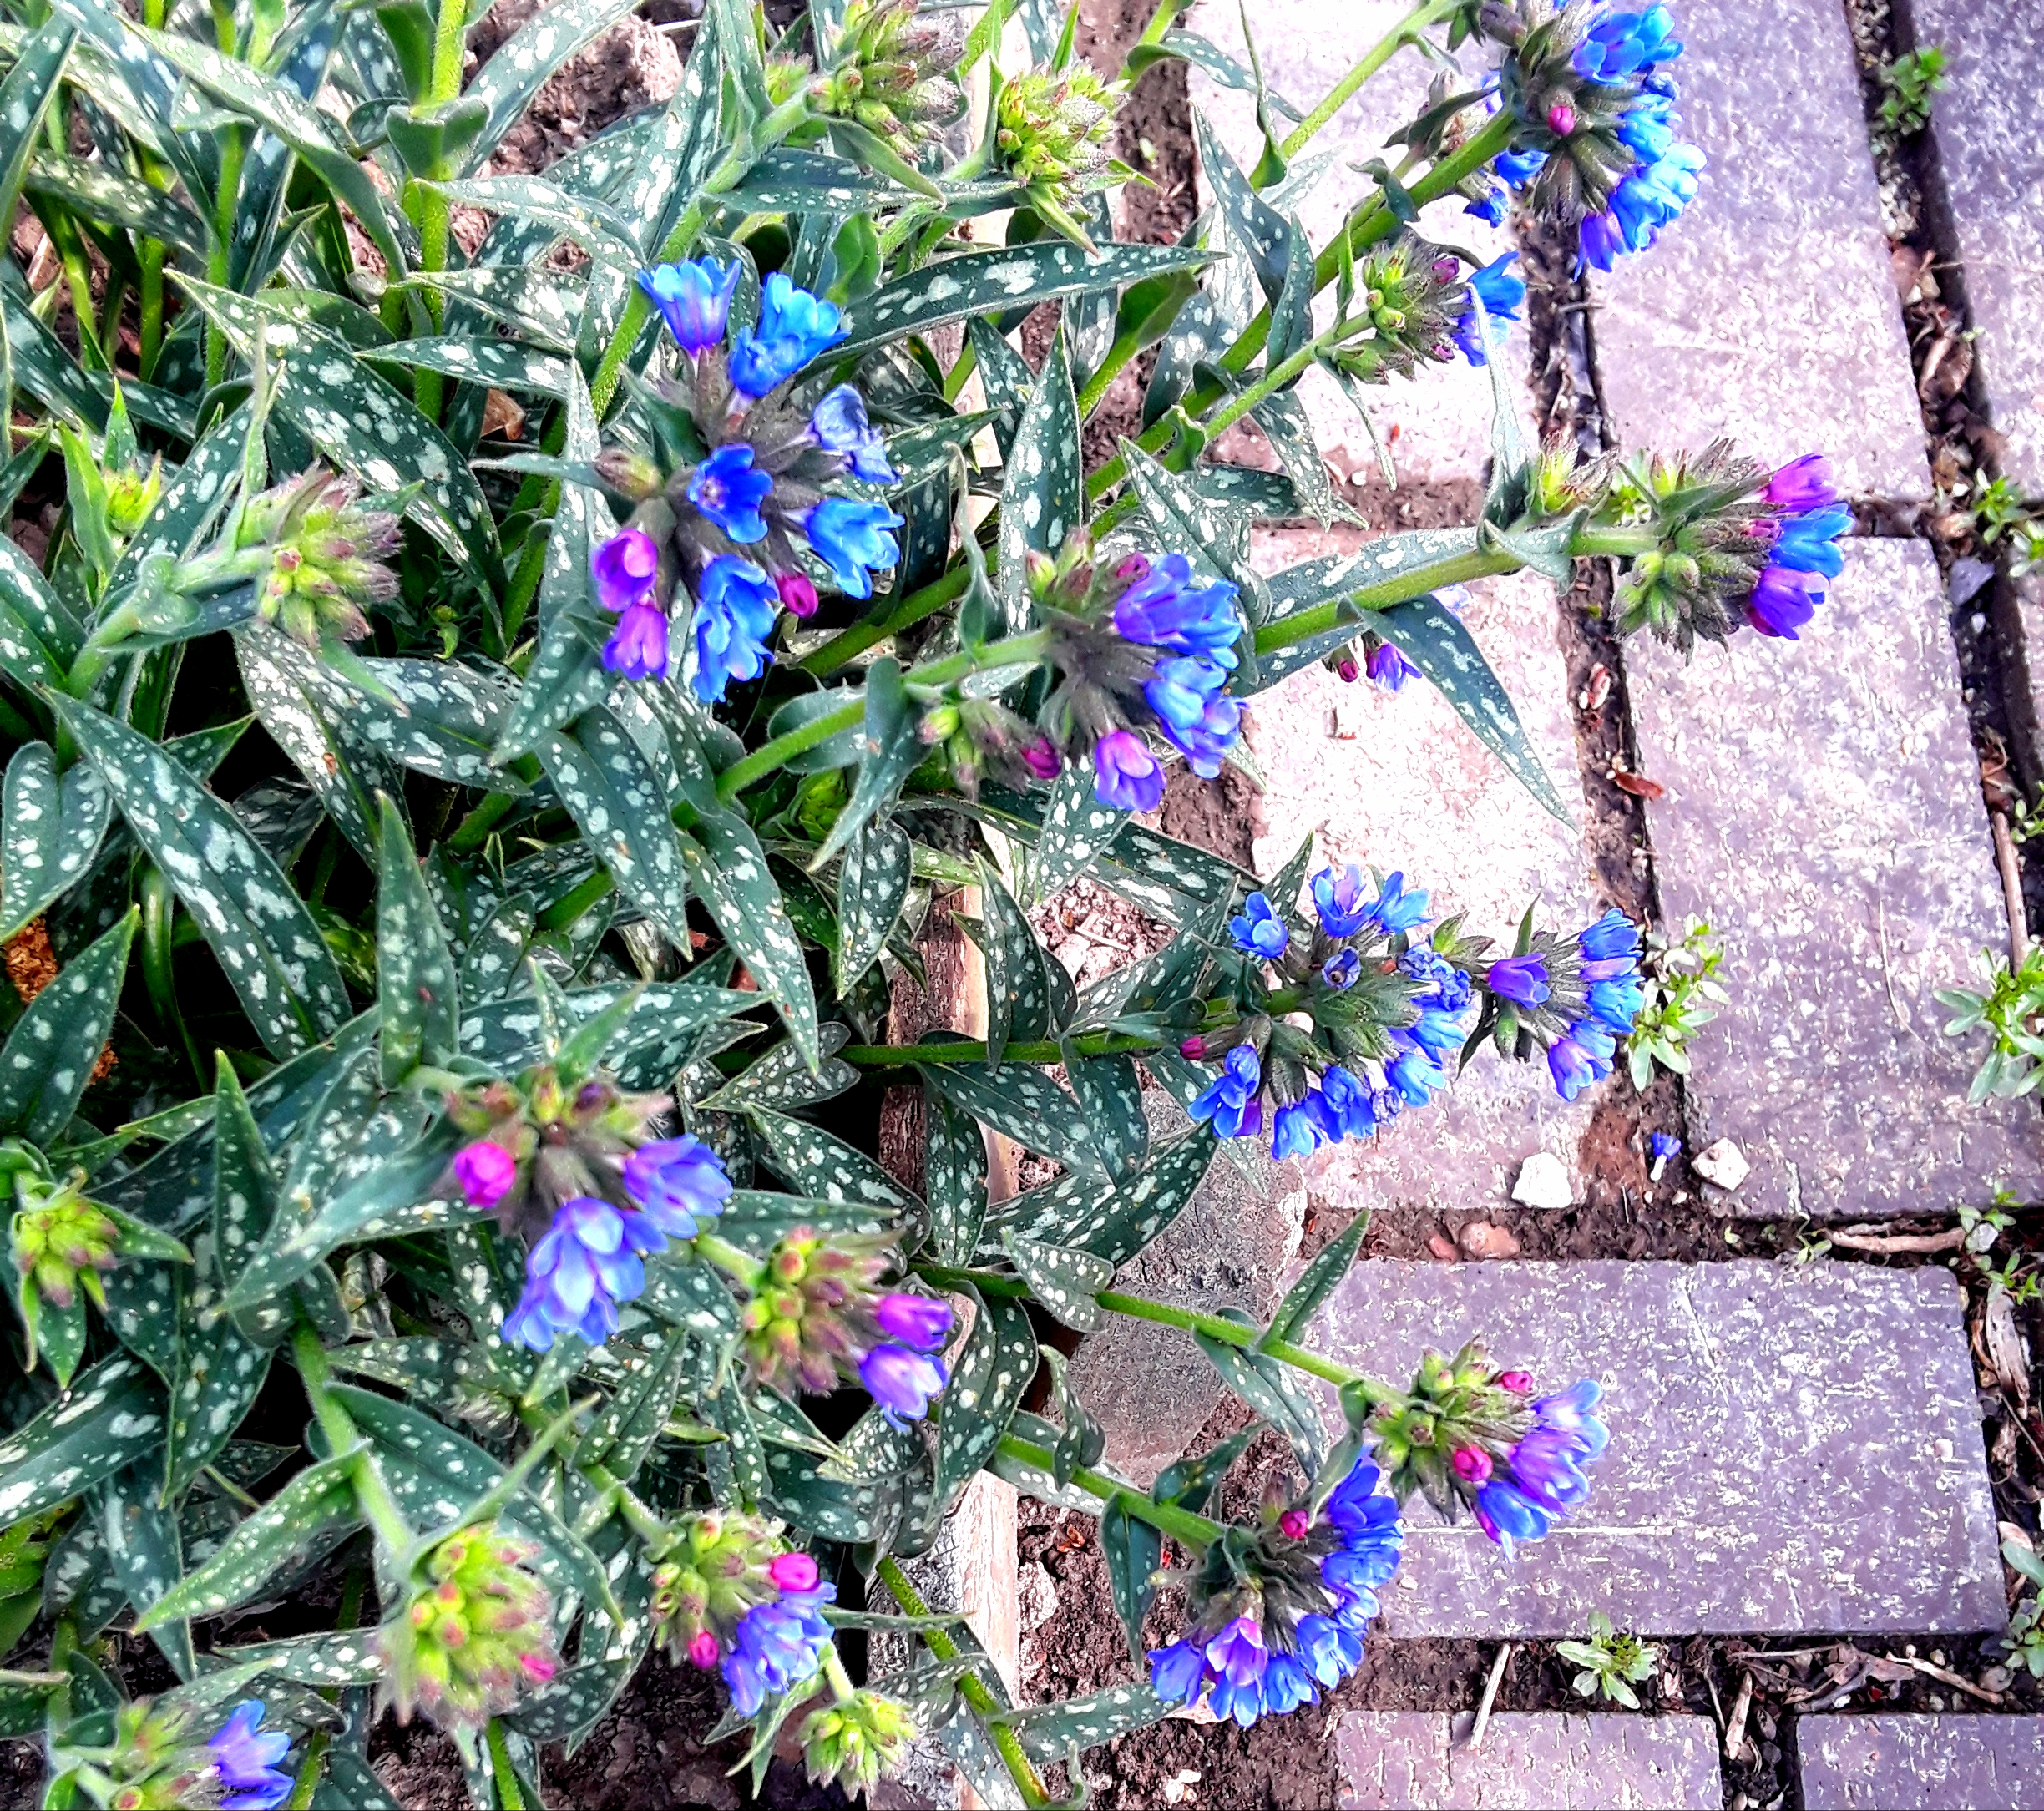 Pulmonaria has spotted light and dark green foliage and true blue flowers